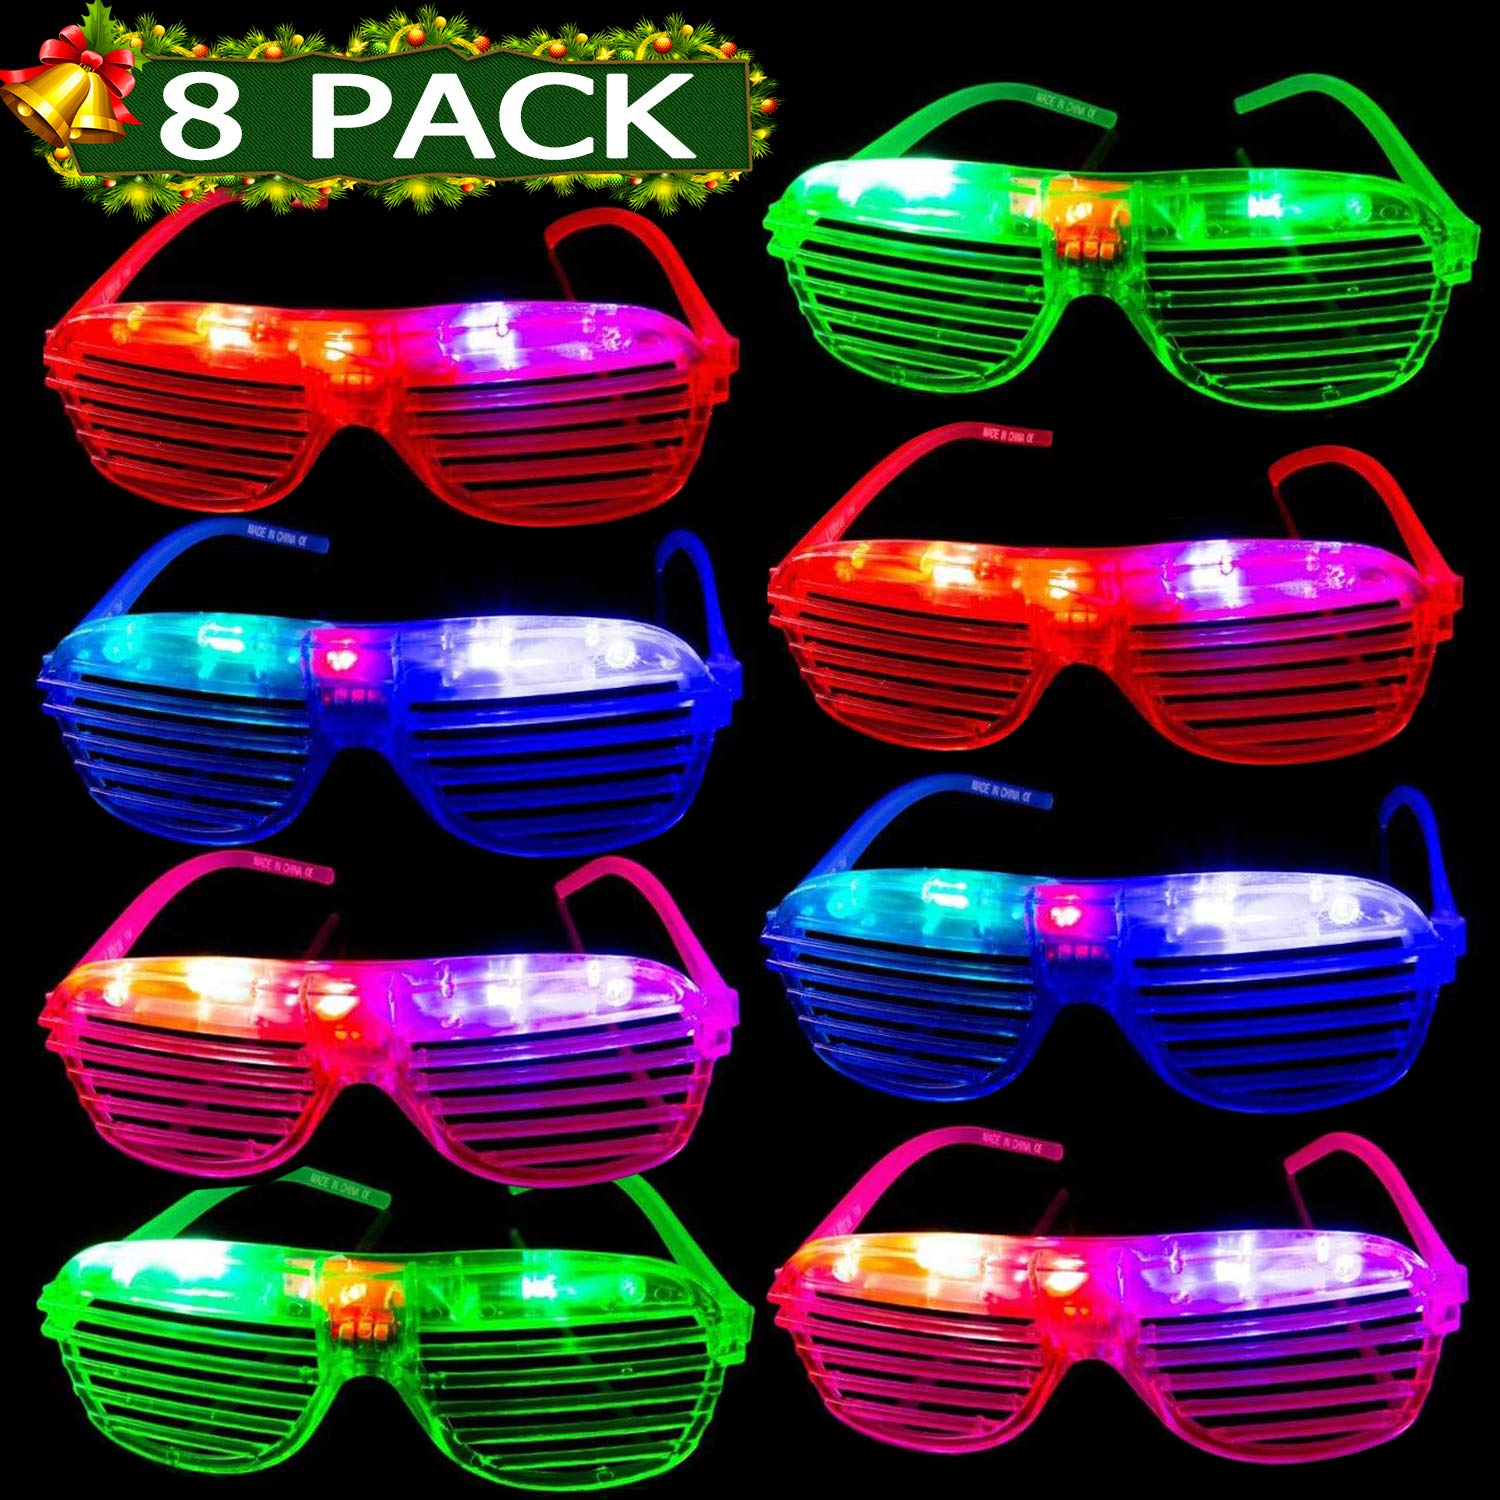 MAXSASI 2019 New Year Eve Party Supplies 8 Pack Glow Party Glasses Pack for Kids Adults Light Up Glasses Slotted Shades LED Rave Glasses Glow in The Dark Party Favors Birthday Holiday Ideal Gifts